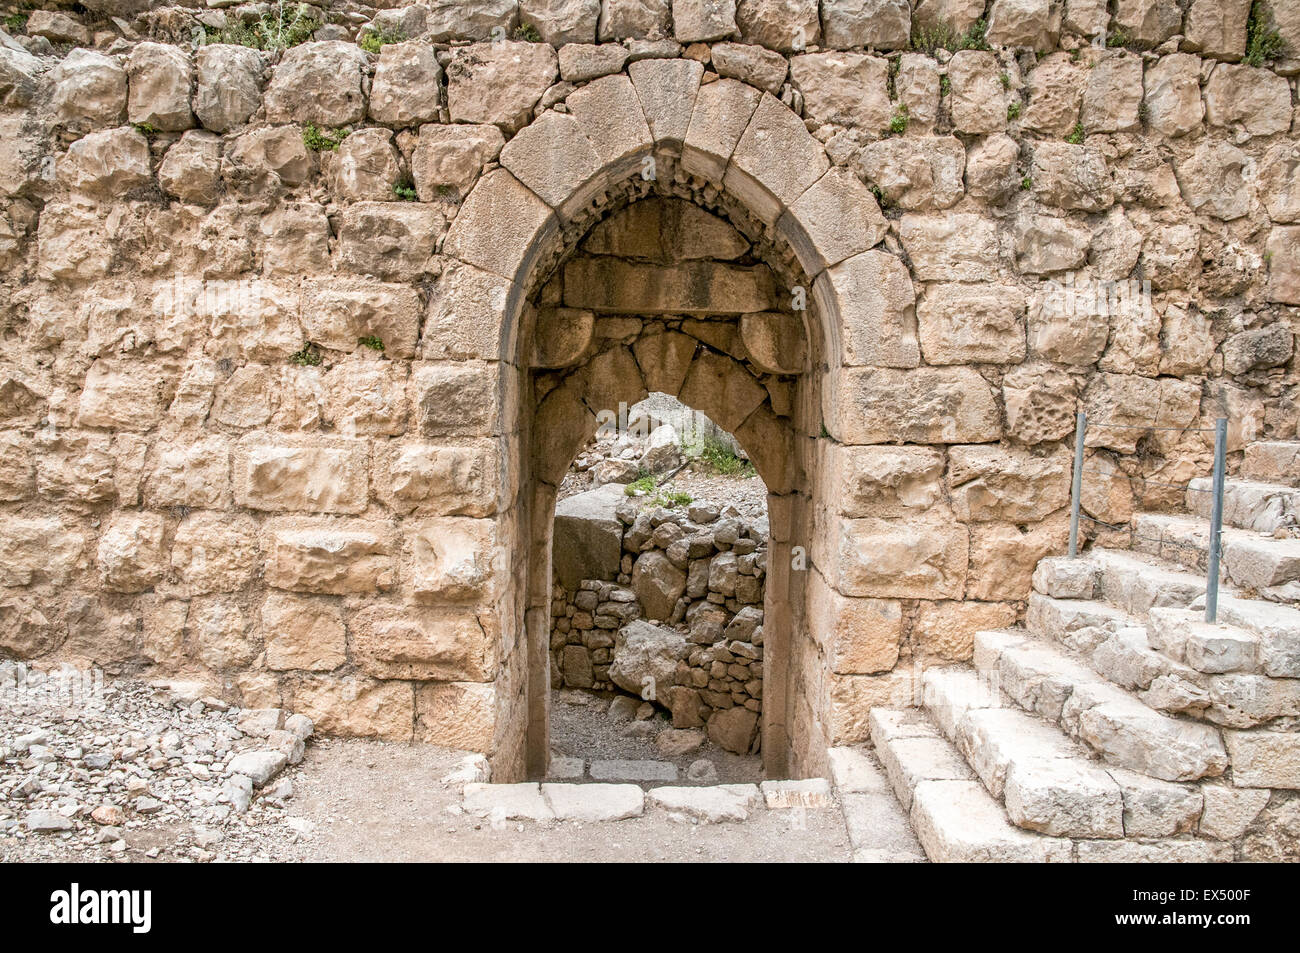 The Western Gate The Nimrod (Namrud) Fortress or Nimrod Castle is a medieval Muslim castle situated on the southern - Stock Image